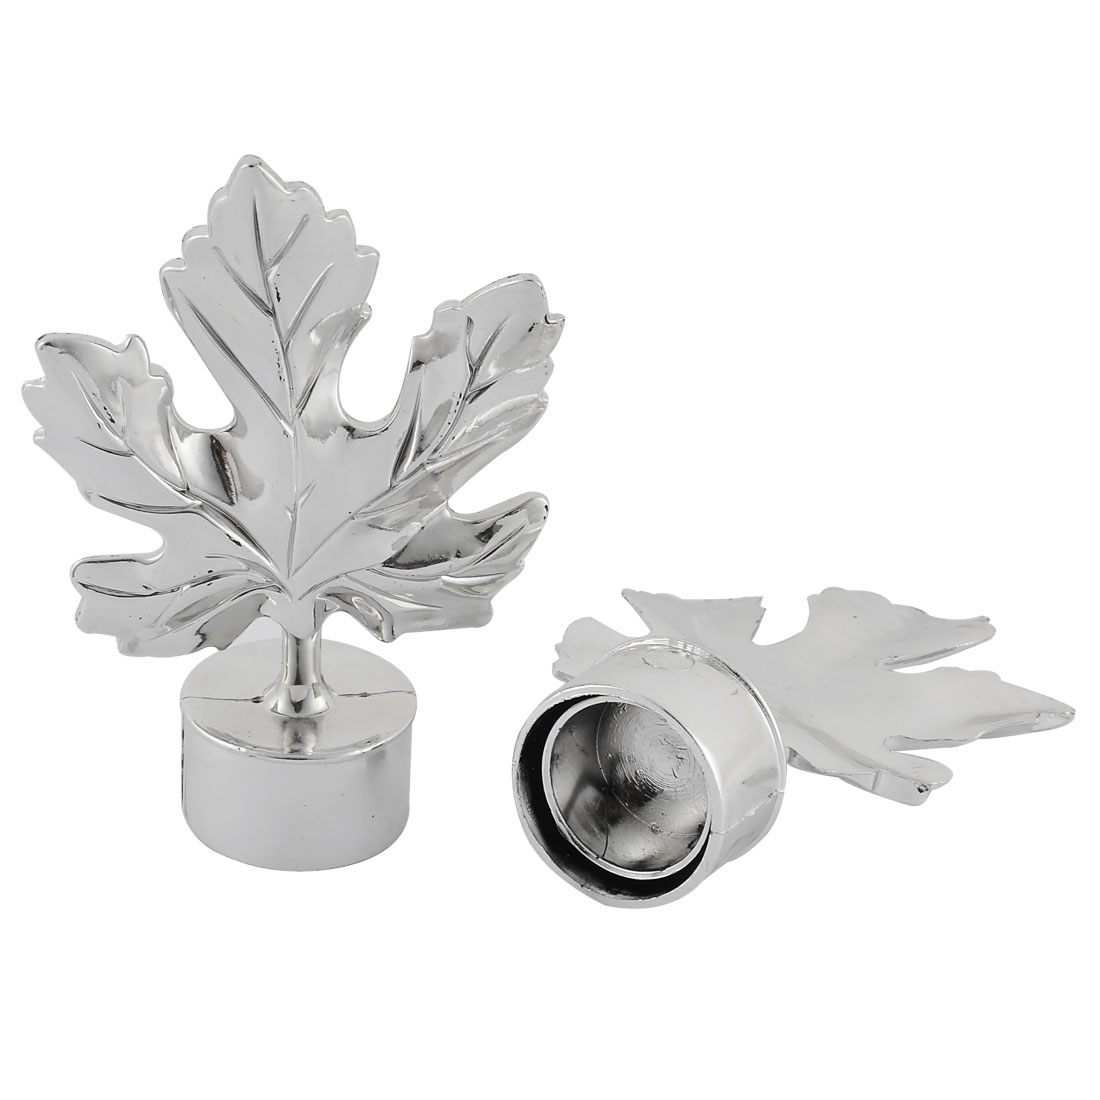 Plastic Leaf Shaped Curtain Pole Decor Decorative End Cap Silver Tone 3.4cm Inner Diameter 2pcs